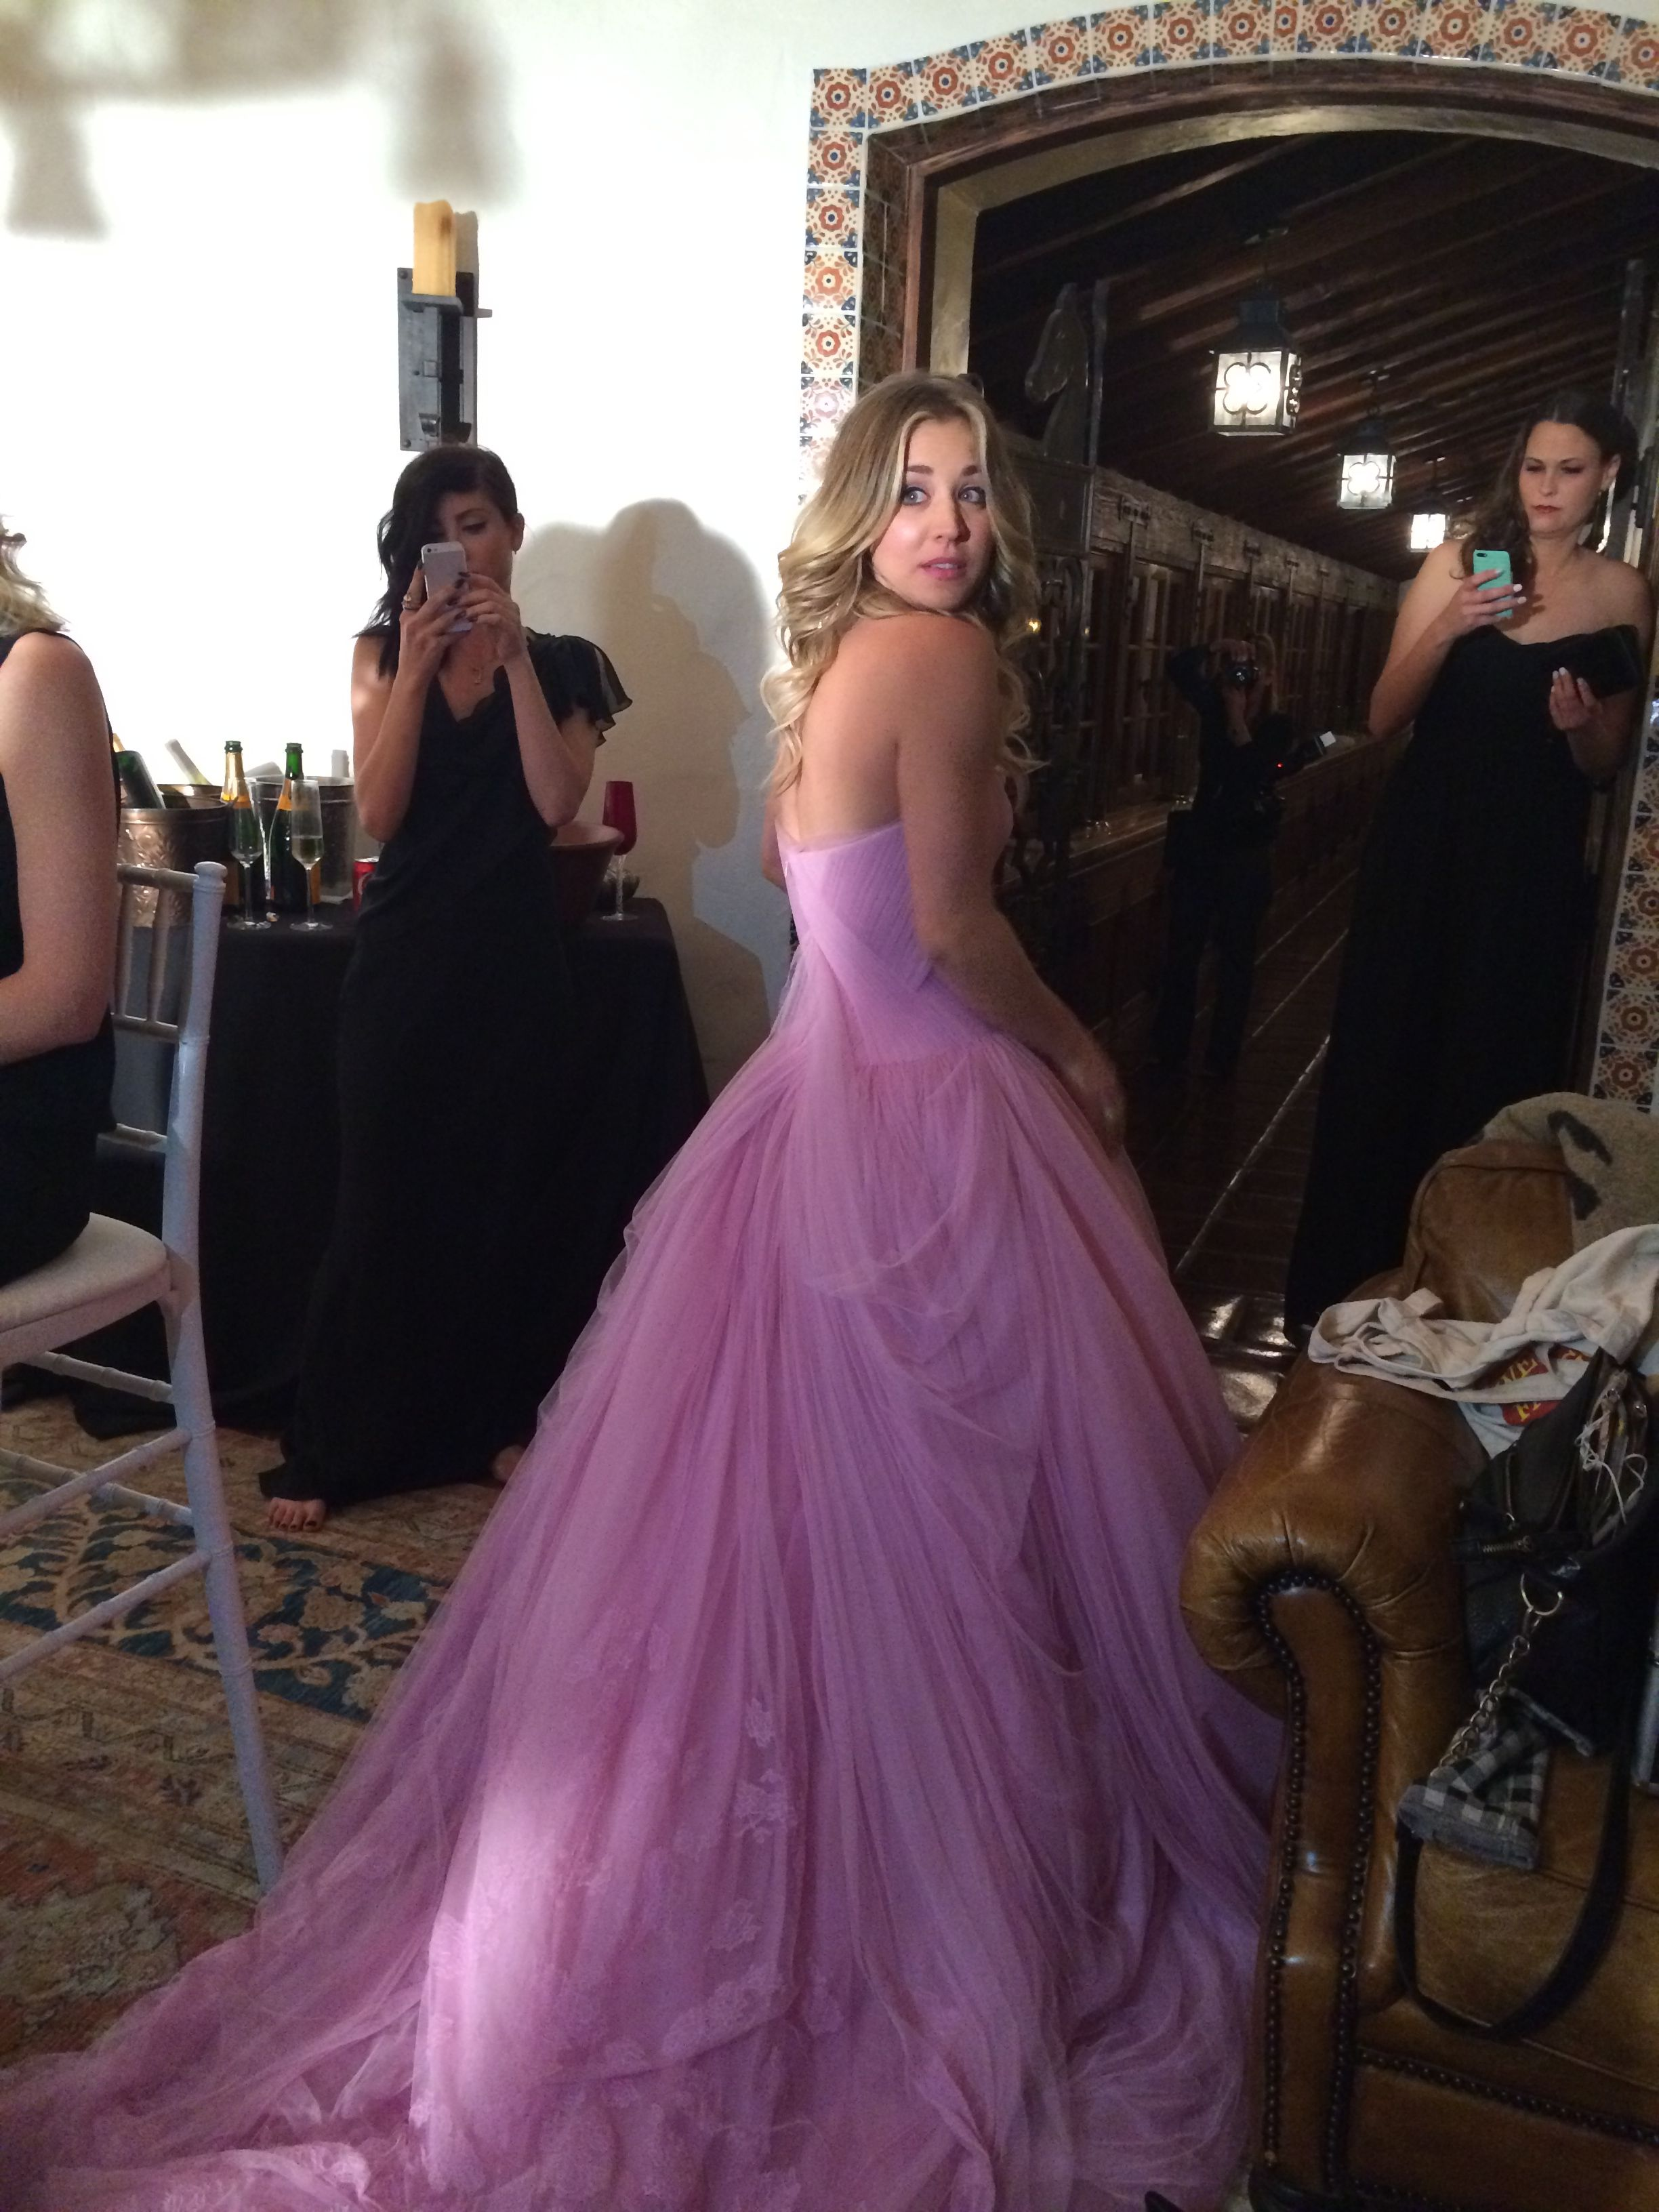 Vera wang red wedding dress  Caley cuoco wedding dress Love it Love this pink color  Dresses